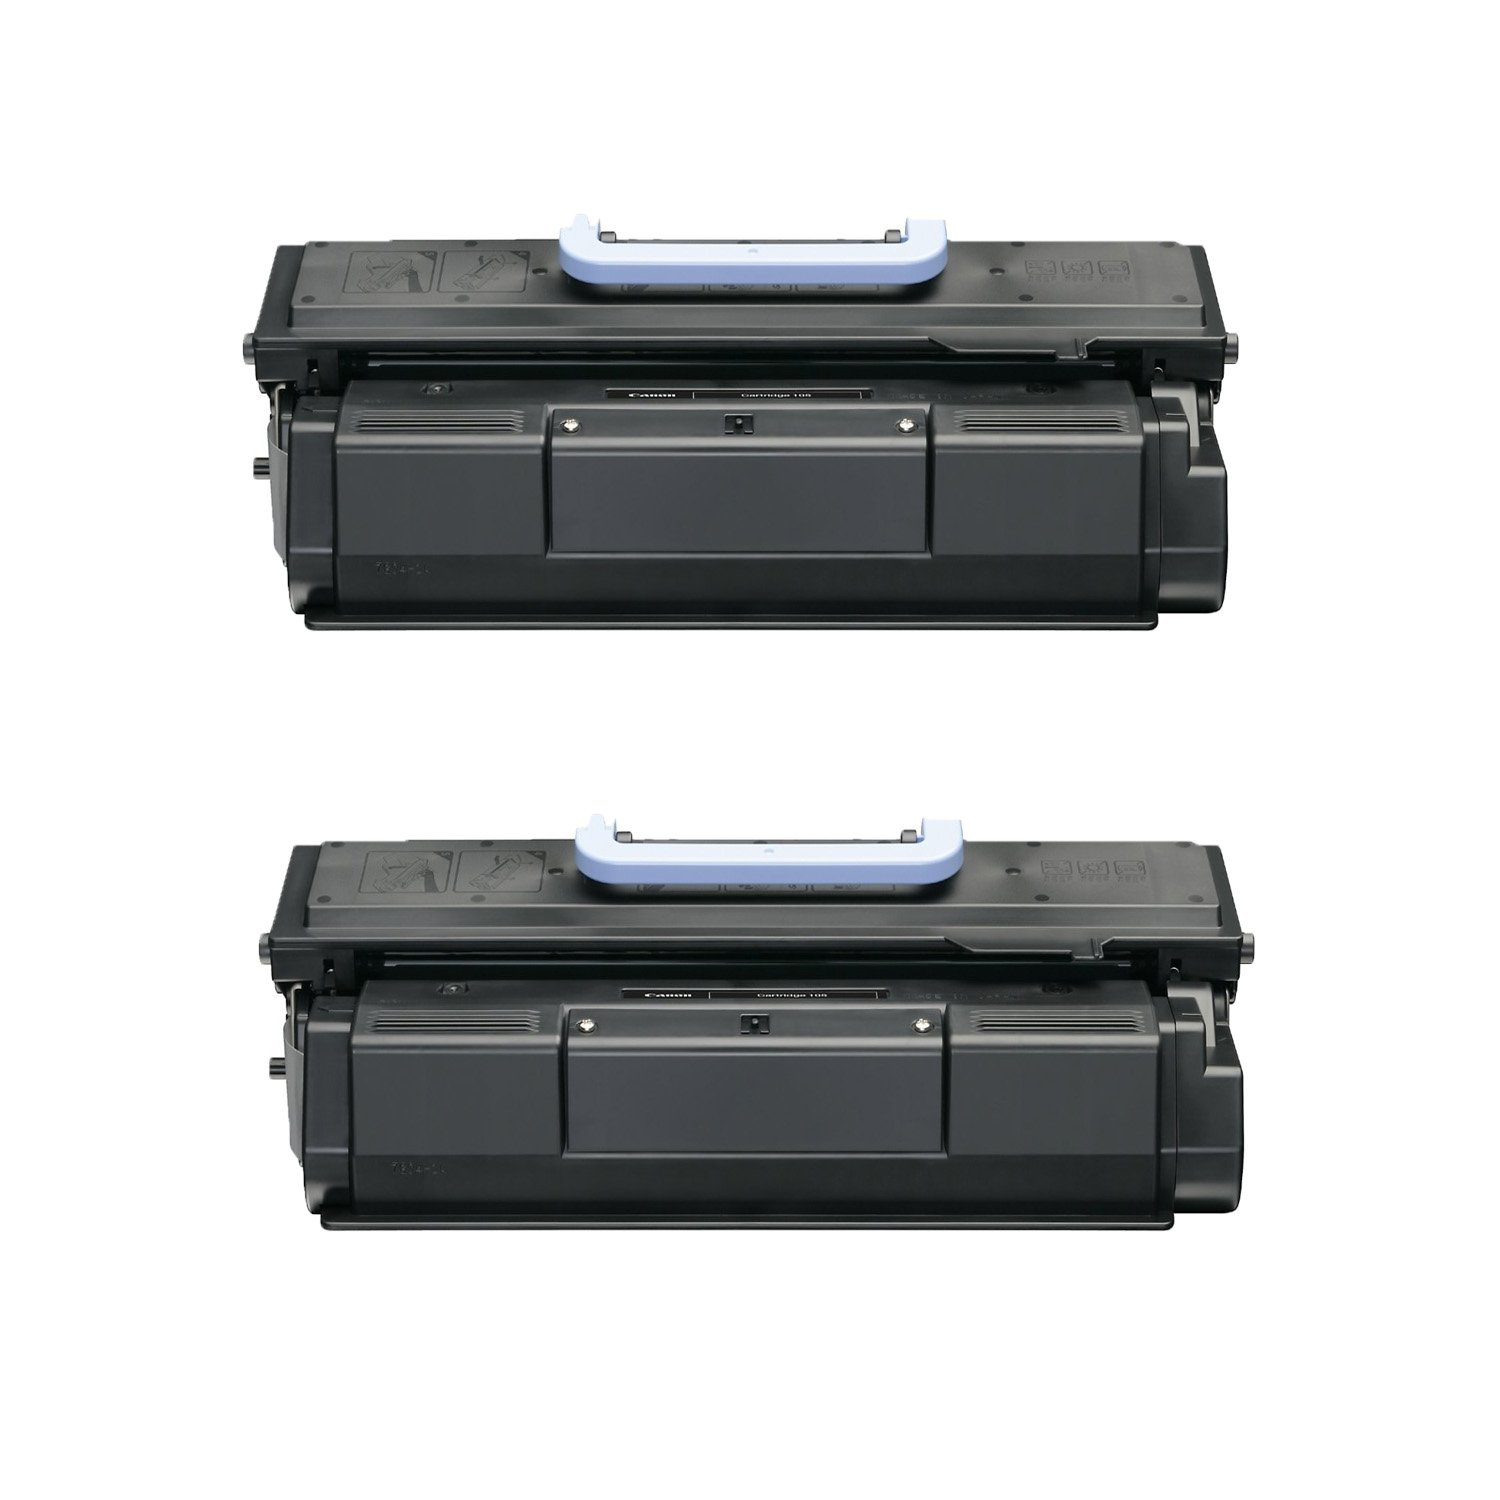 Office And Warehouse Supplies 2 Pack Canon 105 Remanufactured Toner Cartridge for Canon ImageClass D7280, Bubble Jet BJC 411F, Multi Function ImageClass MF7460 , Yield for 10000 pages - Black